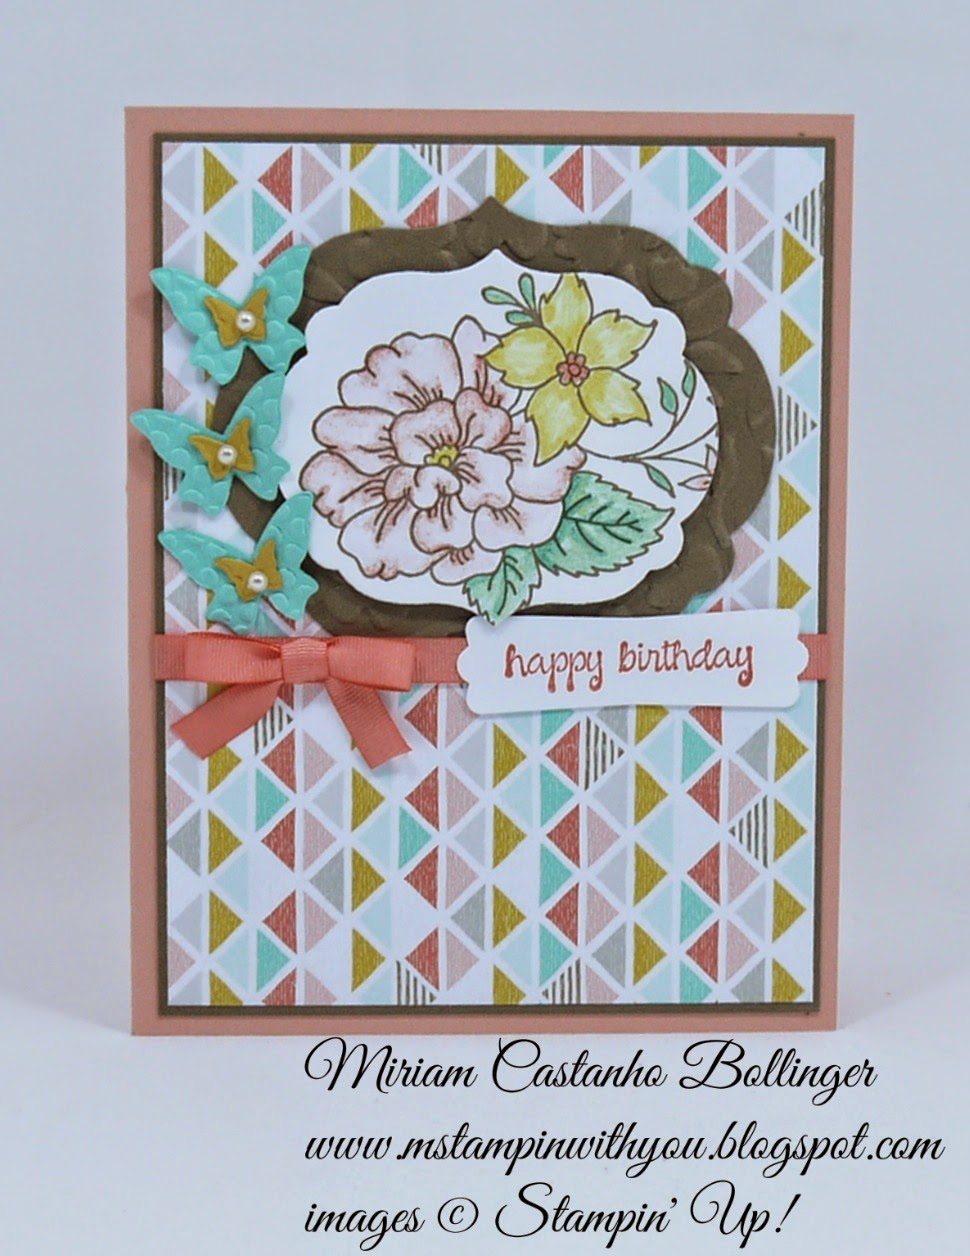 Miriam Castanho Bollinger, #mstampinwithyou, stampin up, demonstrator, pp233, birthday card, best year ever dsp, best year ever accessory pack, I like you stamp set, and many more stamp set, beautiful wings, big shot, labels collection, spring flowers TIEF, word window, su